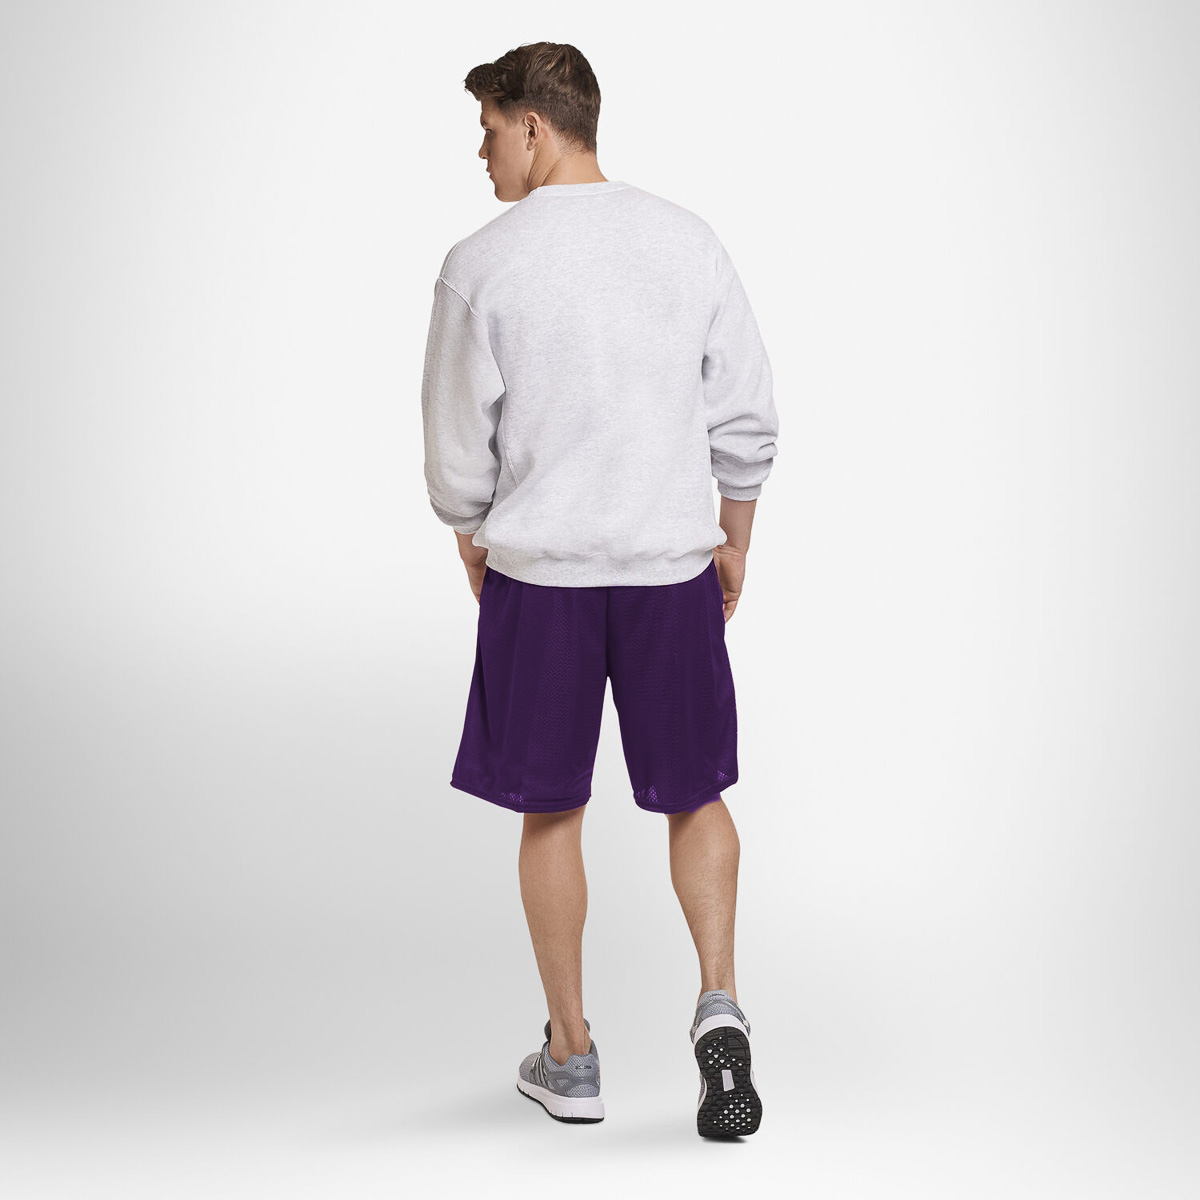 Russell-Athletic-Mens-Shorts-With-Pockets-Mesh-Moisture-Wicking-Gym-Activewear thumbnail 18